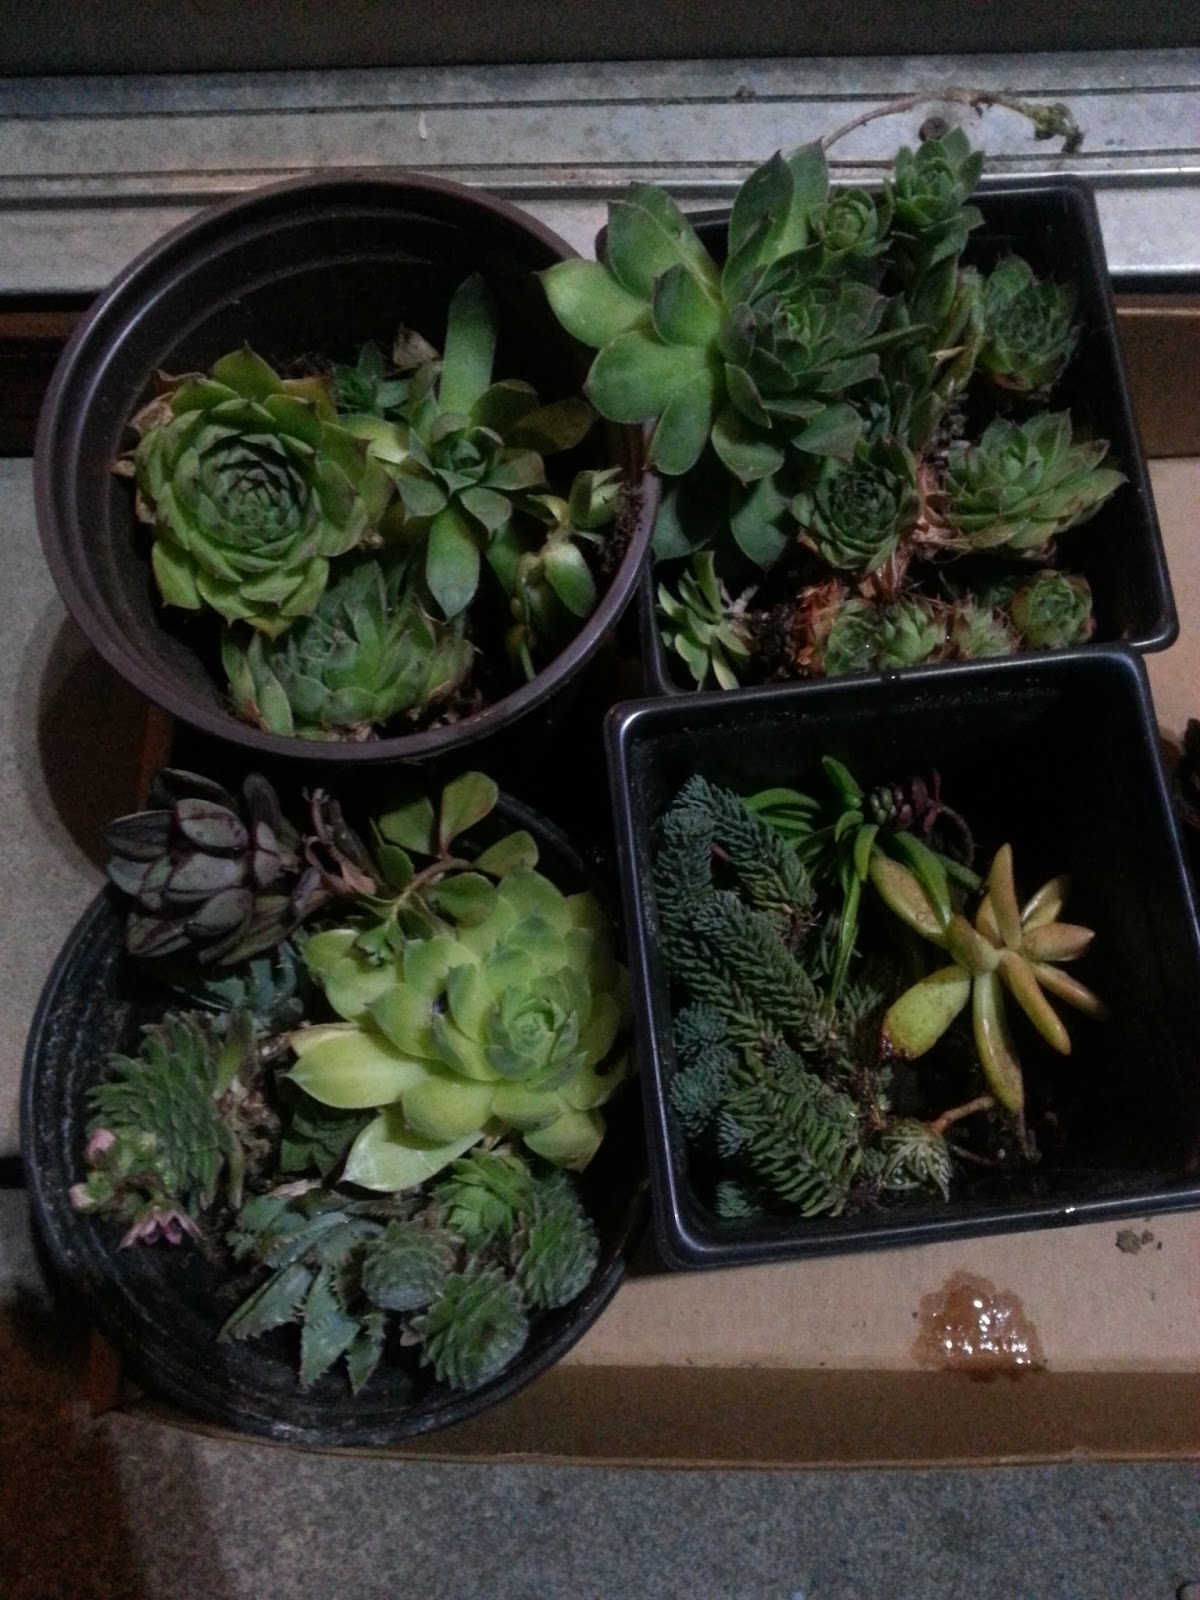 echeveria rosea, aloe, sempervivum, sedum, succulents, oregon